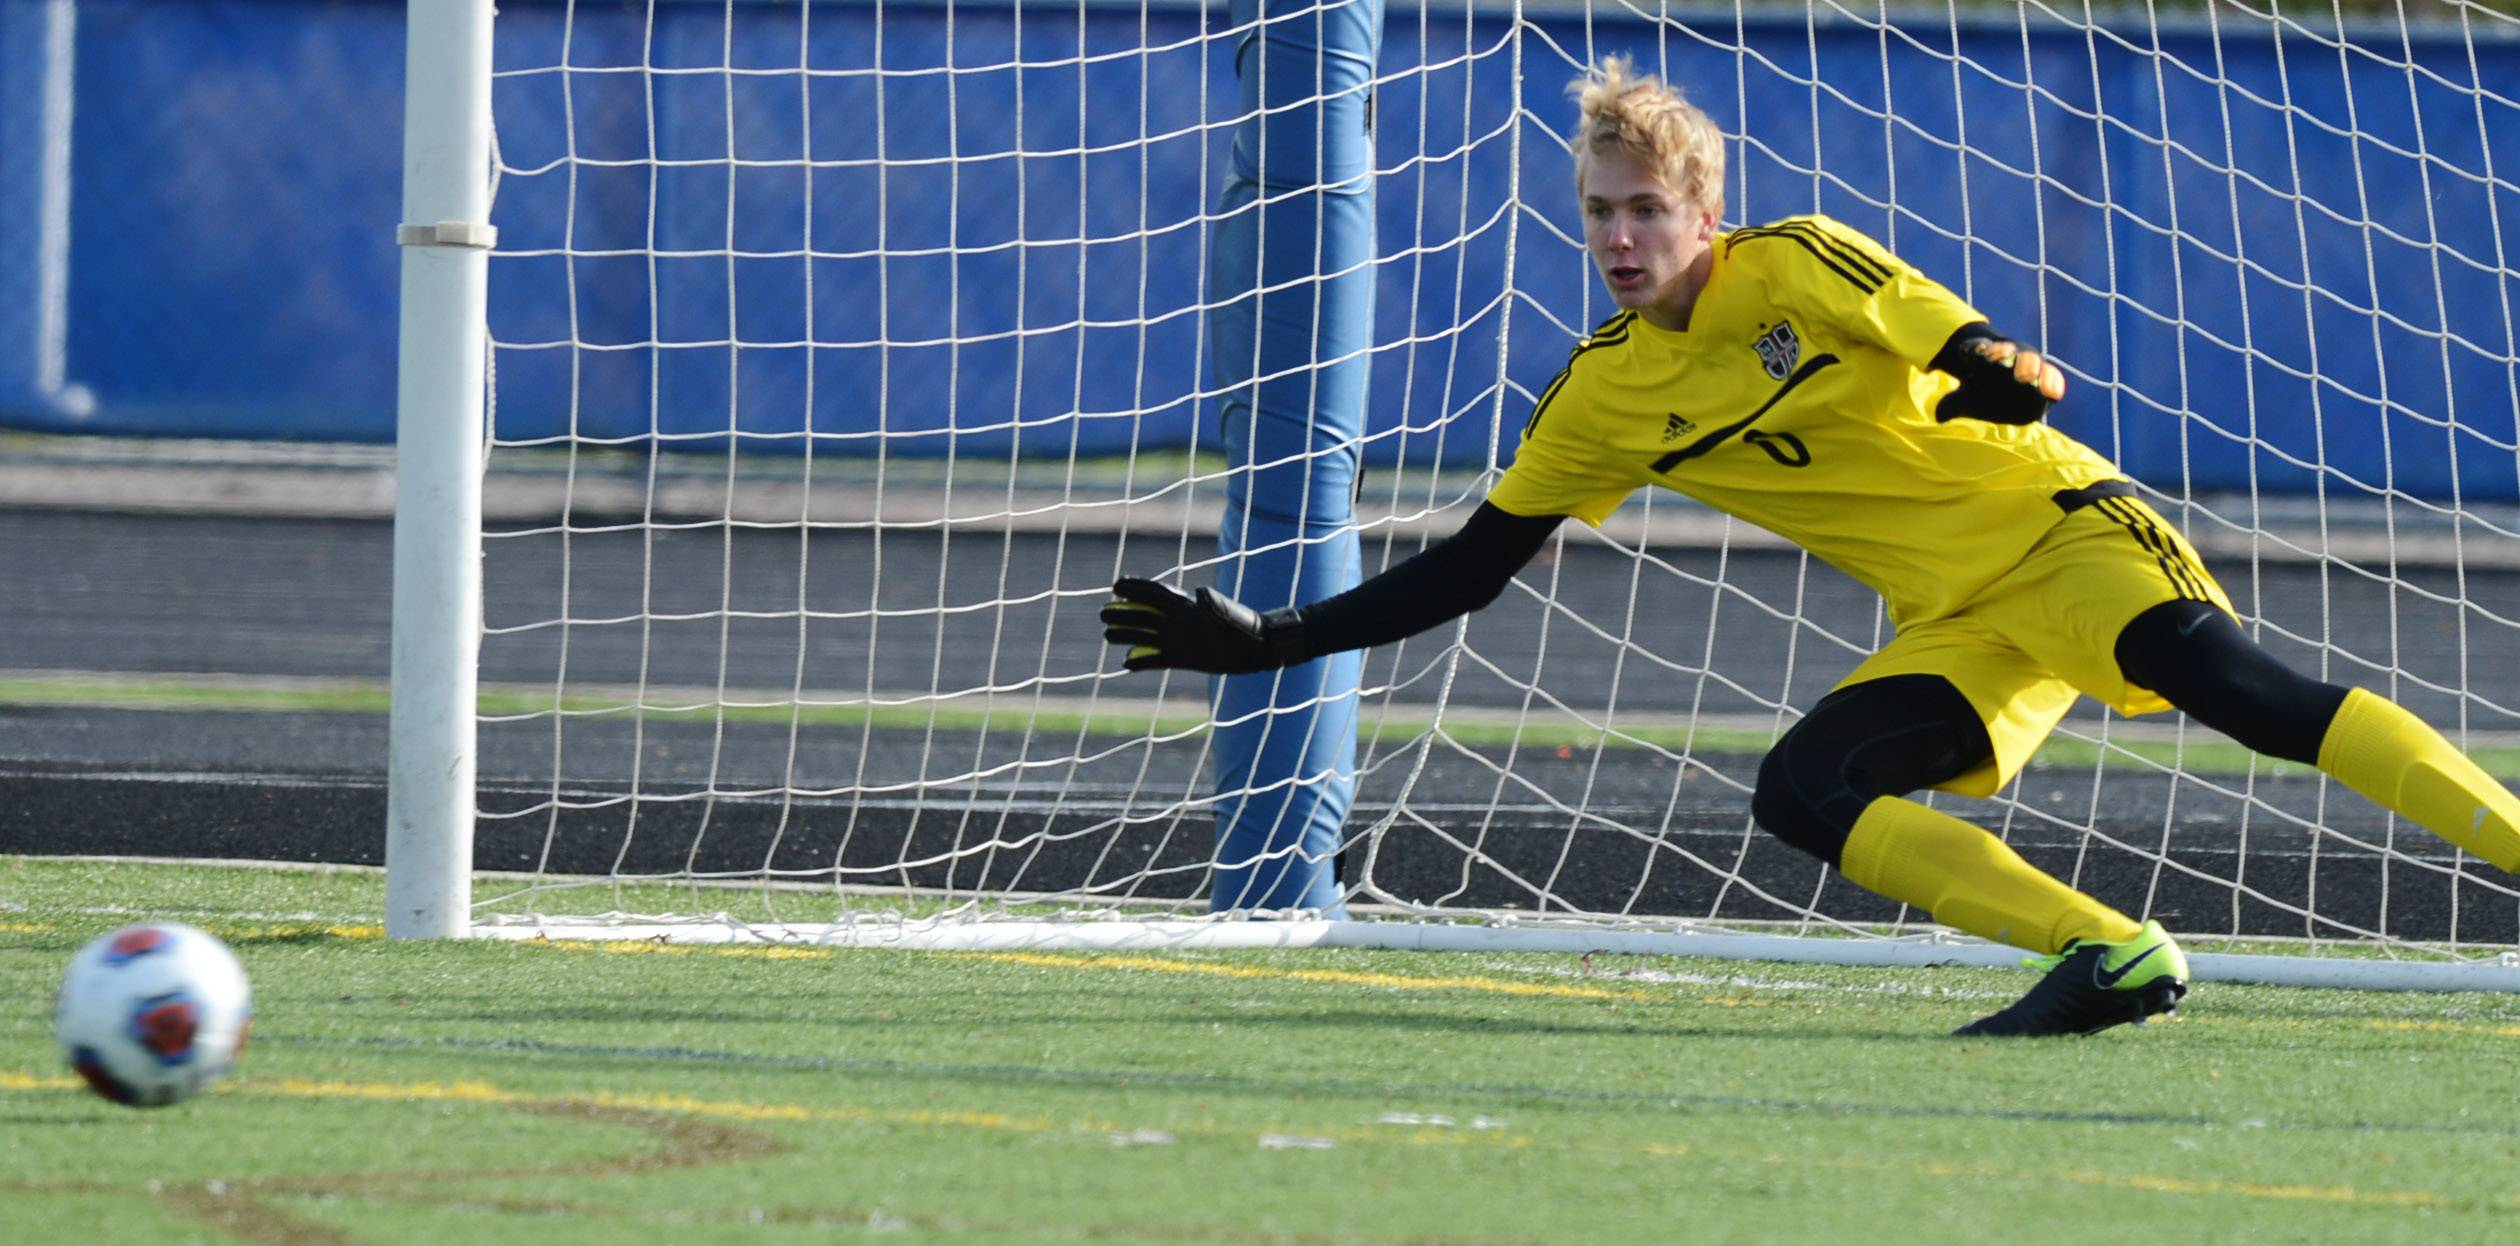 Wheaton Academy goalkeeper J.D. Gunn is unable to stop a Gibault penalty kick during the second half of the Class 2A boys soccer state semifinal in Hoffman Estates Friday.